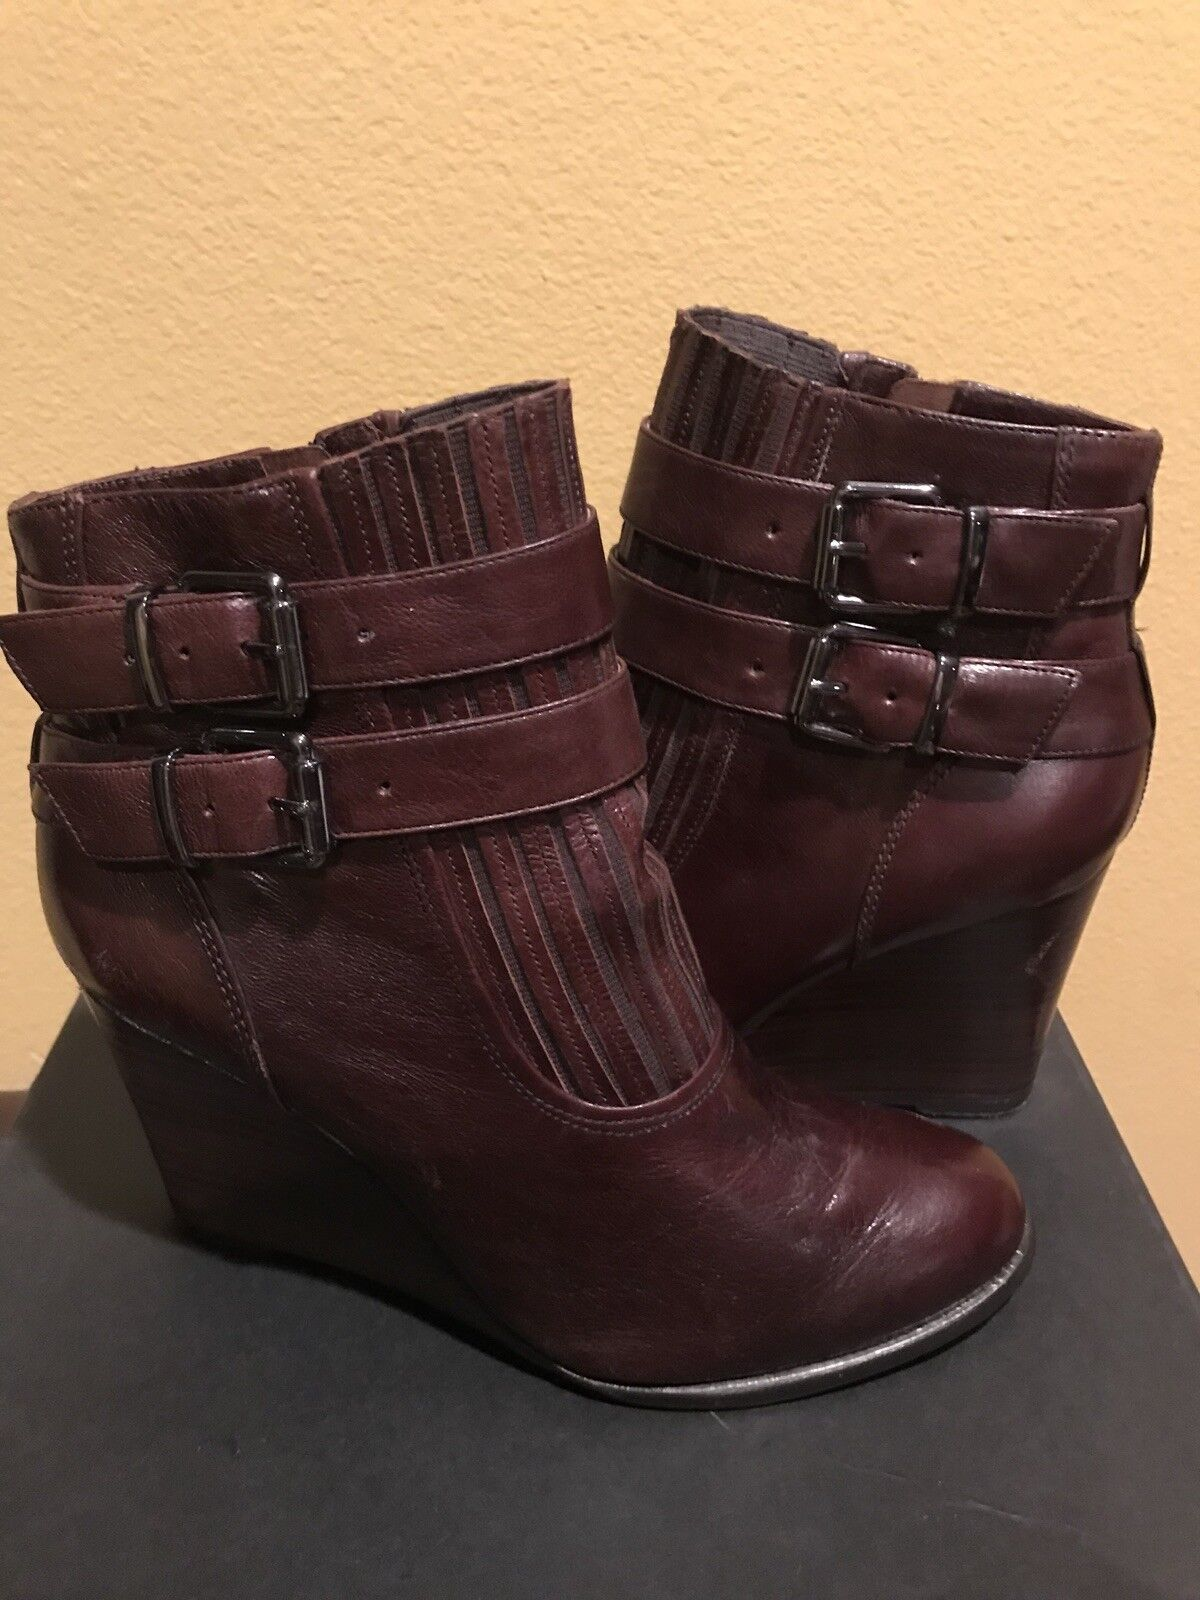 KENNETH COLE Women's Strong Heart LE Ankle Boot ~ Size 8.5 Gorgeous Burgundy